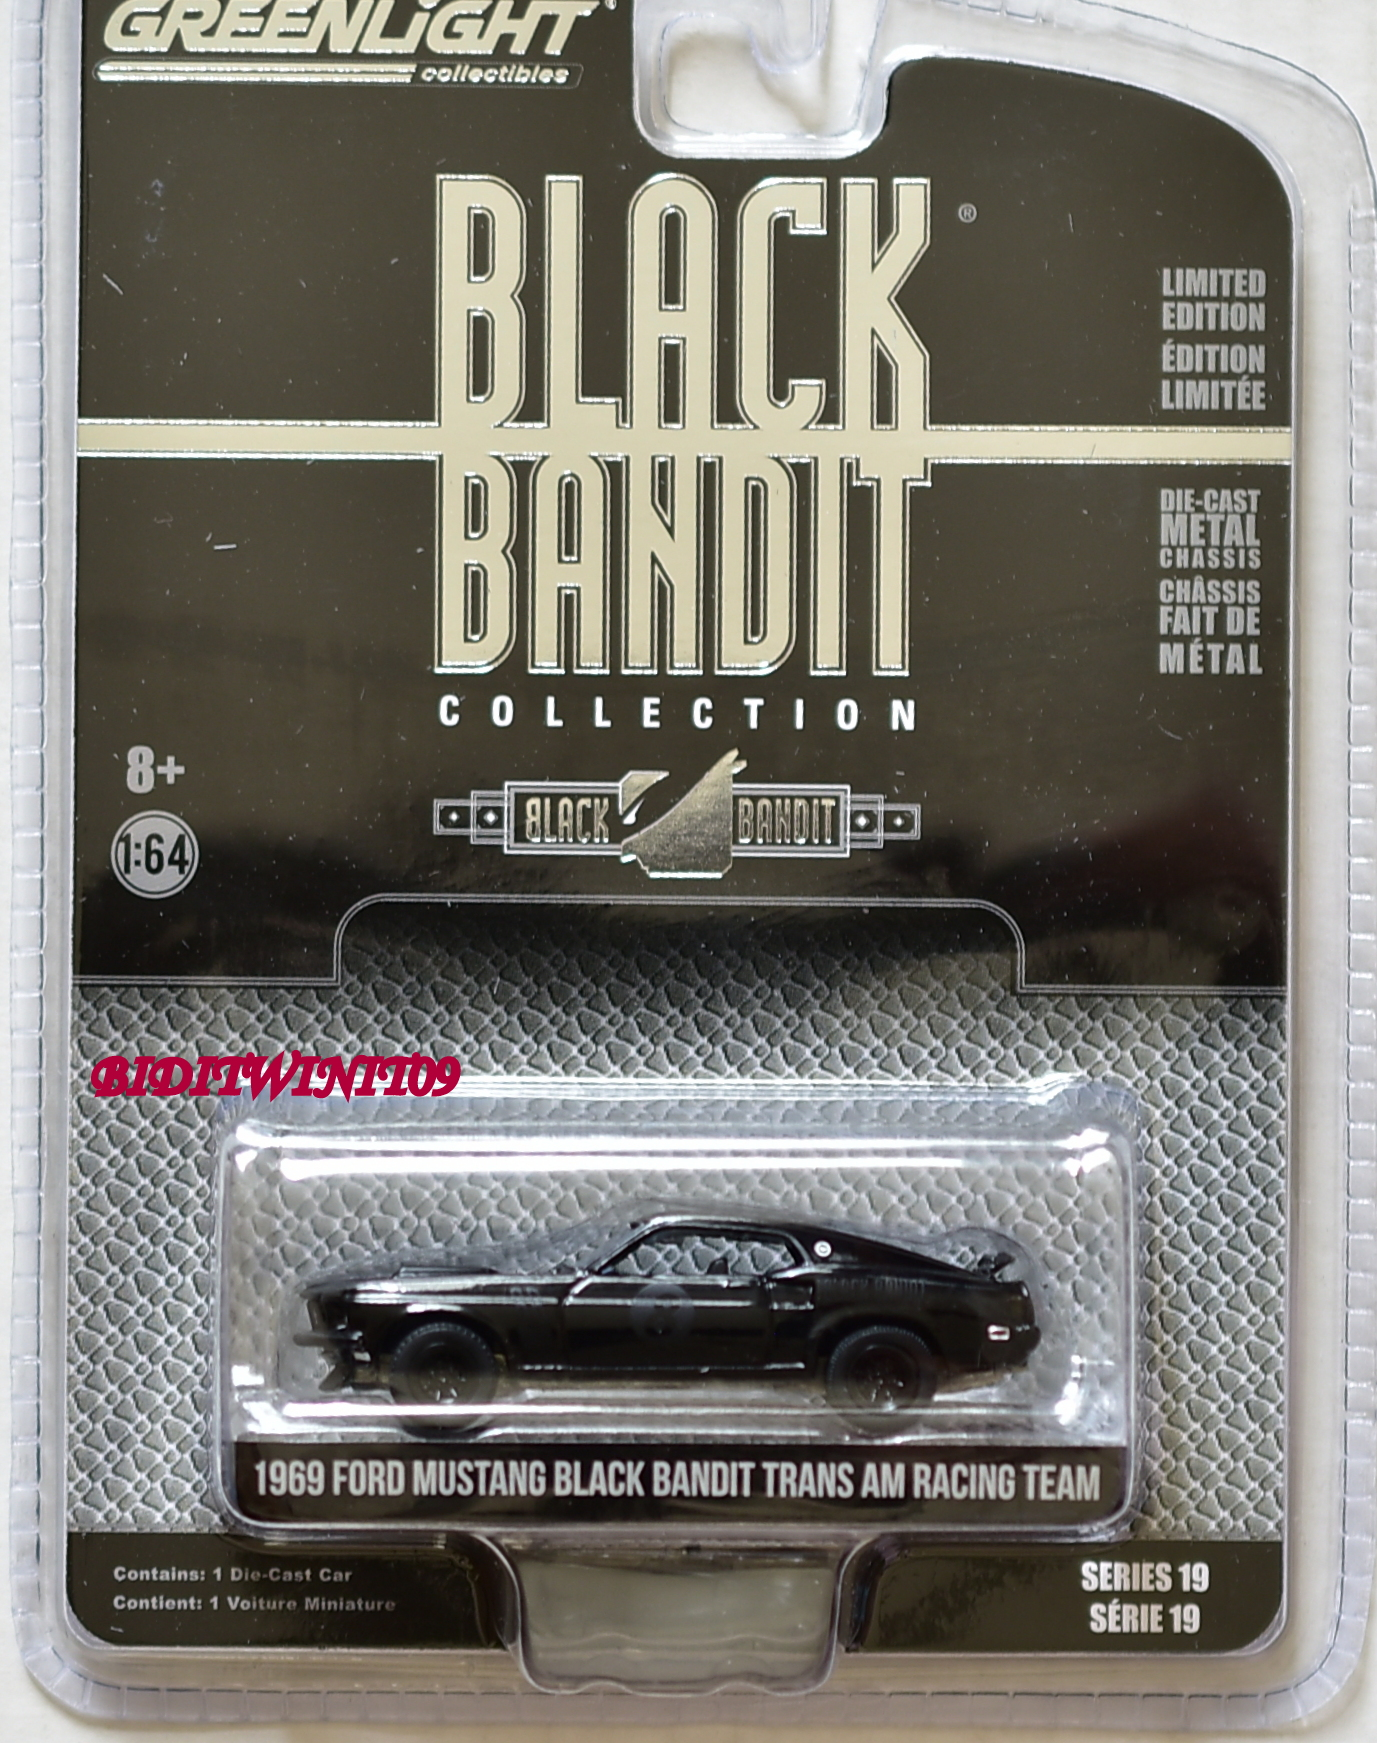 GREENLIGHT 2018 SERIES 19 1969 FORD MUSTANG BLACK BANDIT TRANS AM RACING TEAM